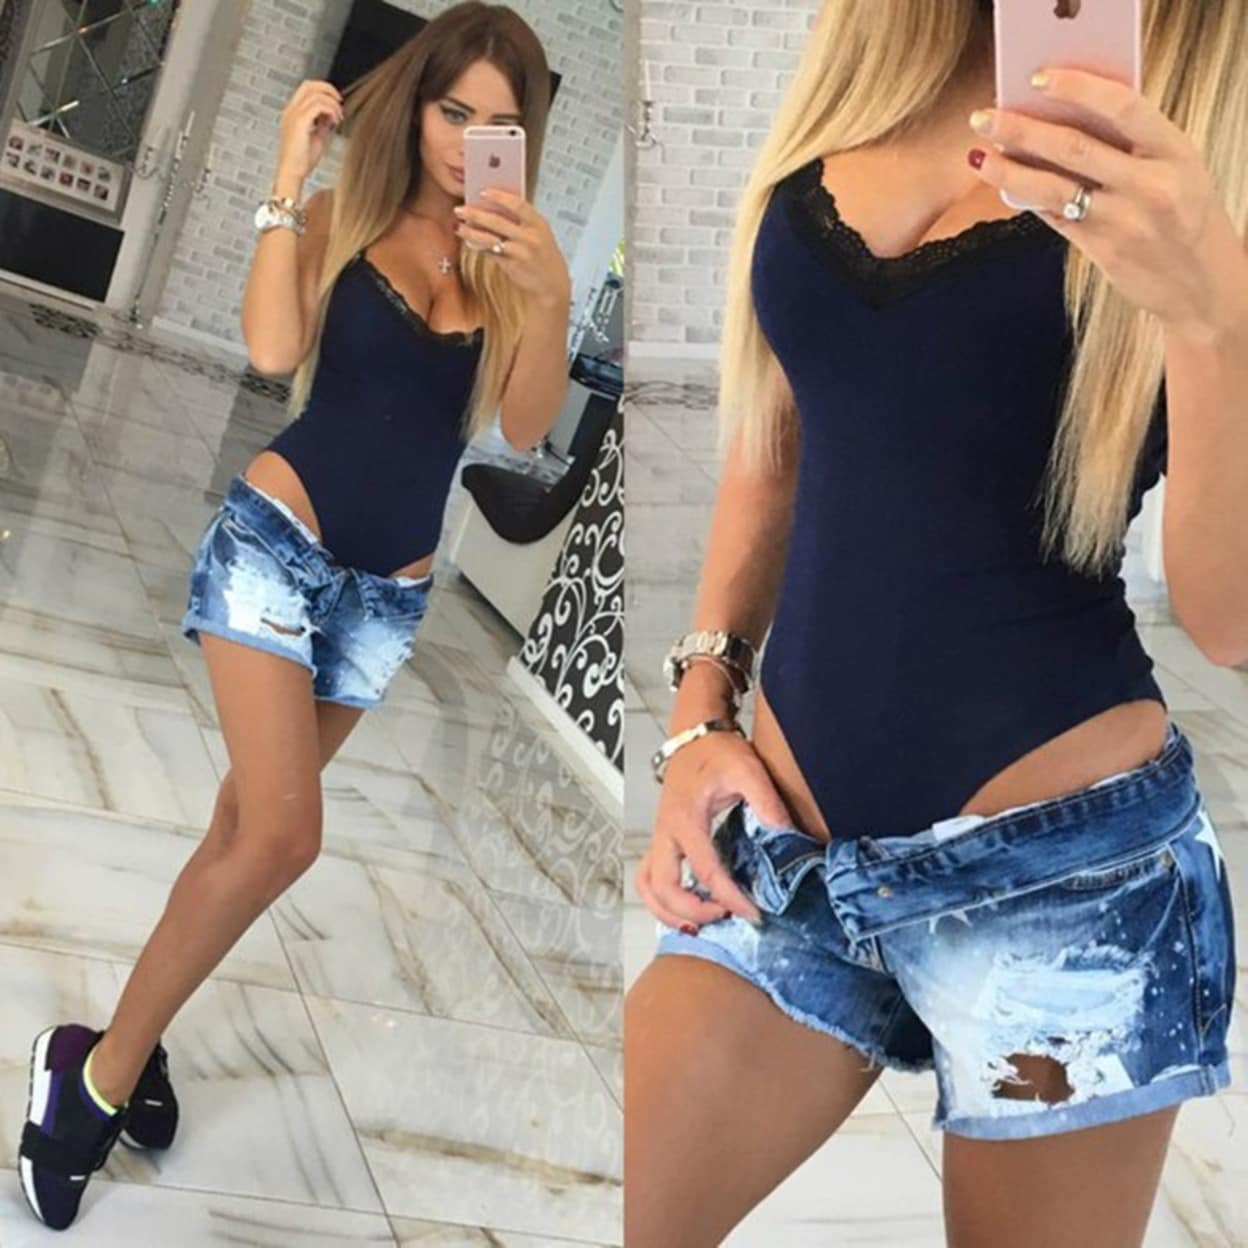 27ed4edc27b9 Shop Summer Plus Size Women Sexy Bodysuits V neck Sleeveless Spaghetti  Strap Lace Patchwork Bodycon Jumpsuit Rompers Tops - Free Shipping On  Orders Over  45 ...